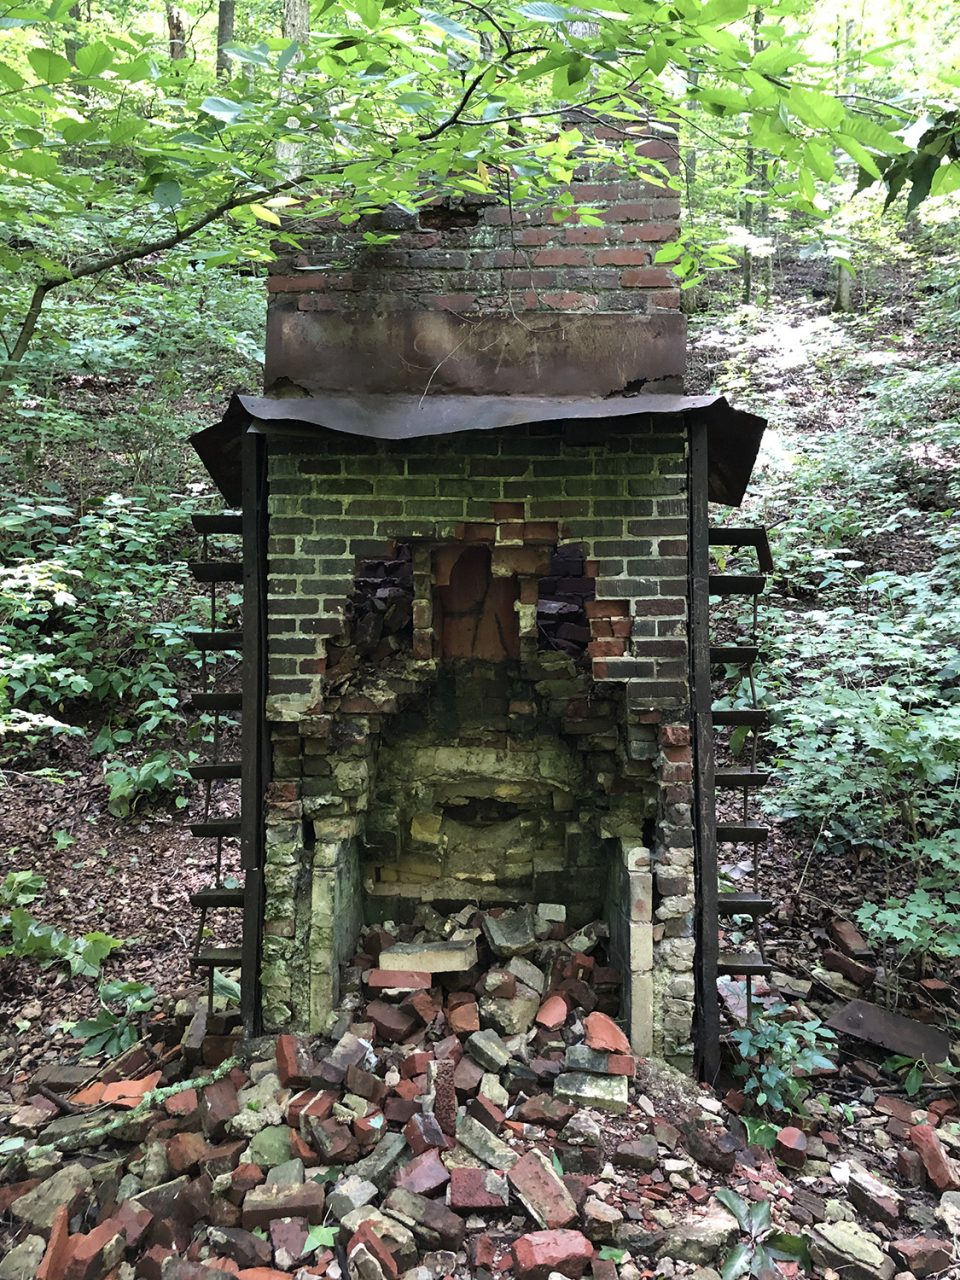 Ruins of an old house (the still house?) in the woods near the river at Stillhouse Hollow Waterfall